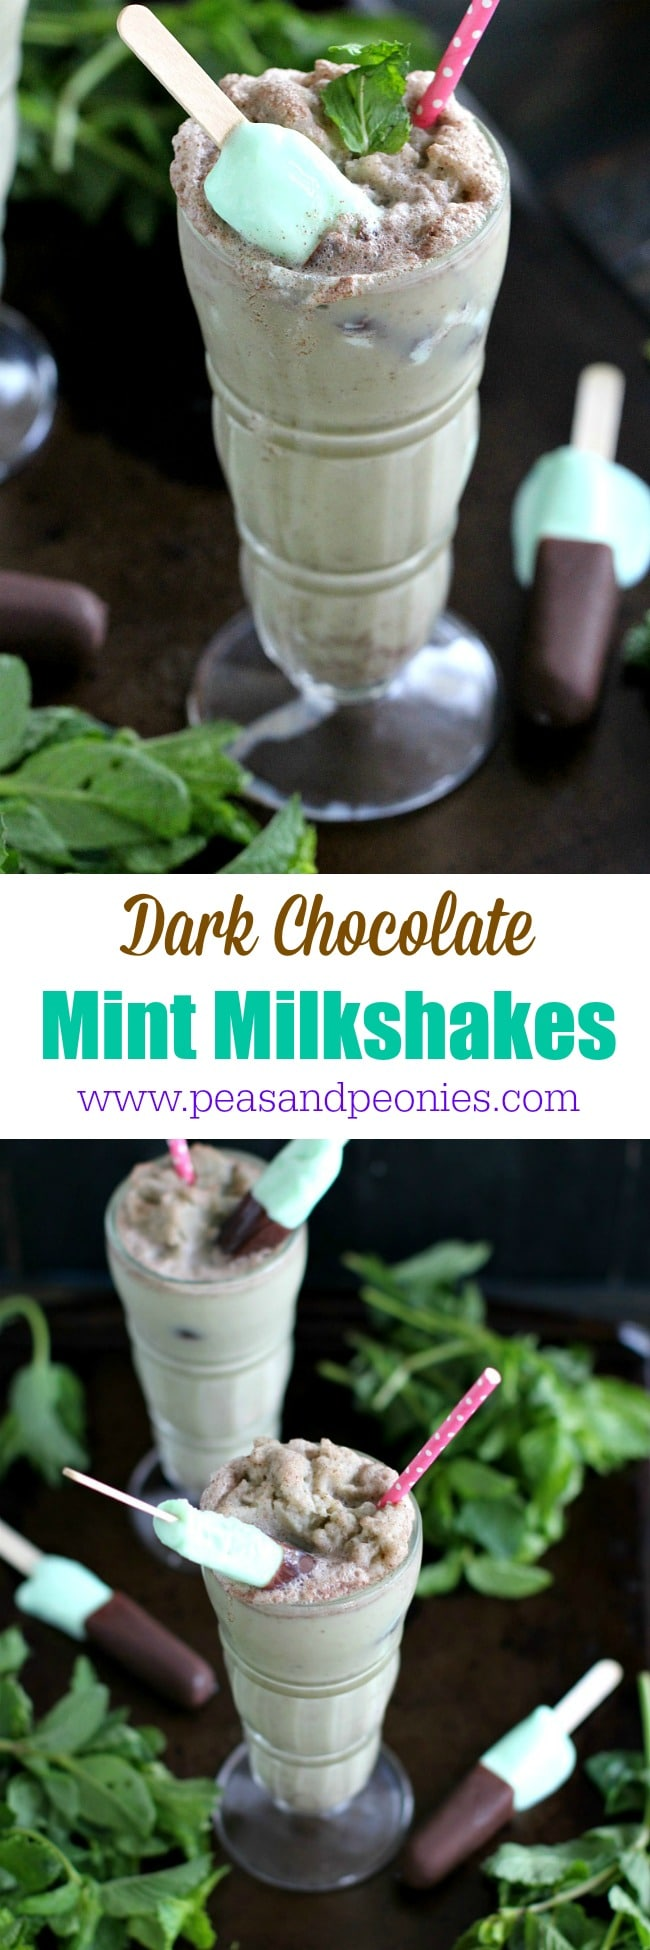 Dark Chocolate Mint Milkshakes made with almond milk, fresh mint and topped with ice cream bars are delicious and refreshing.